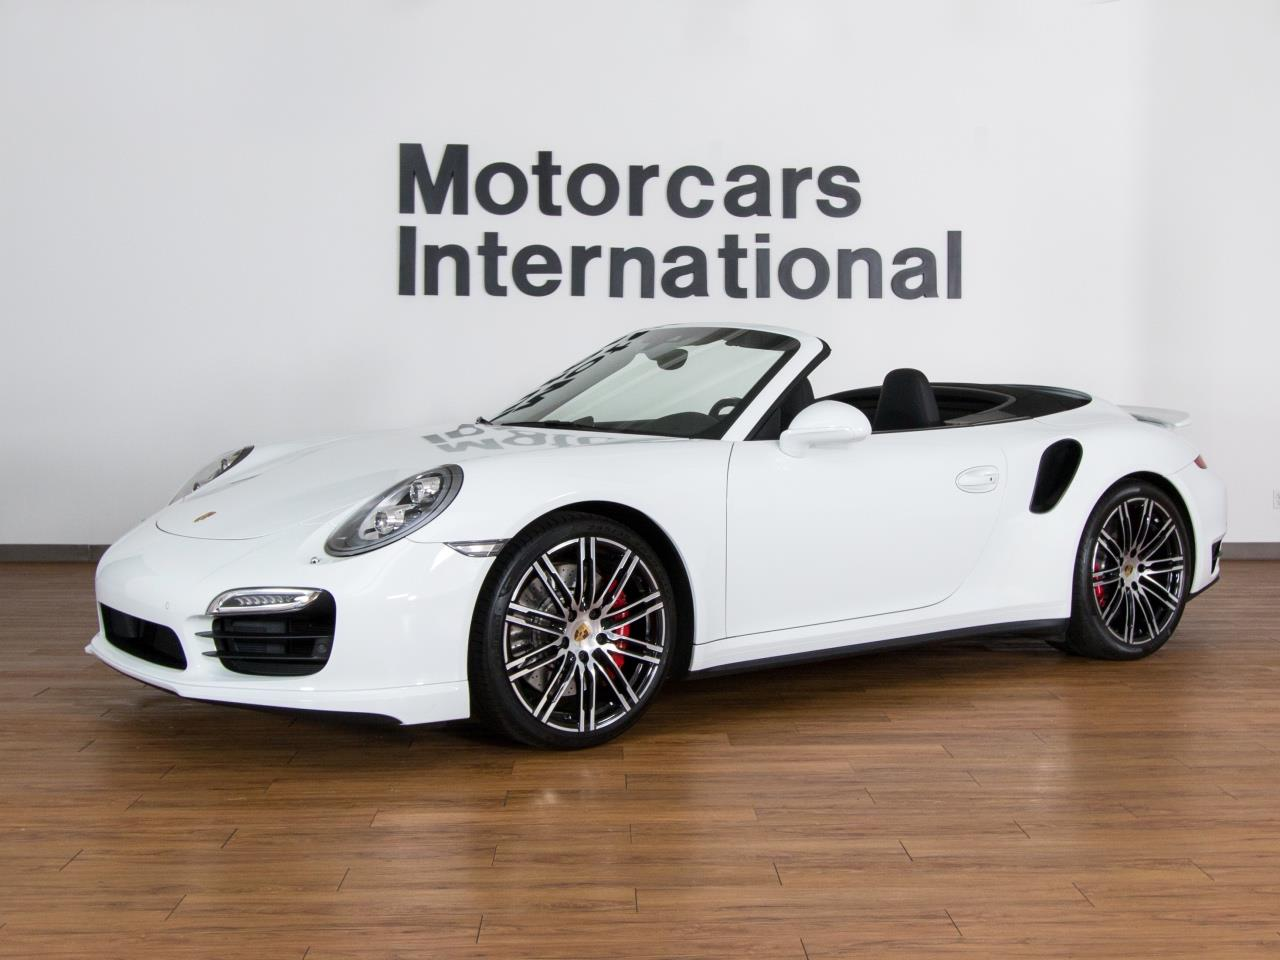 2015 Porsche 911 Turbo Cab